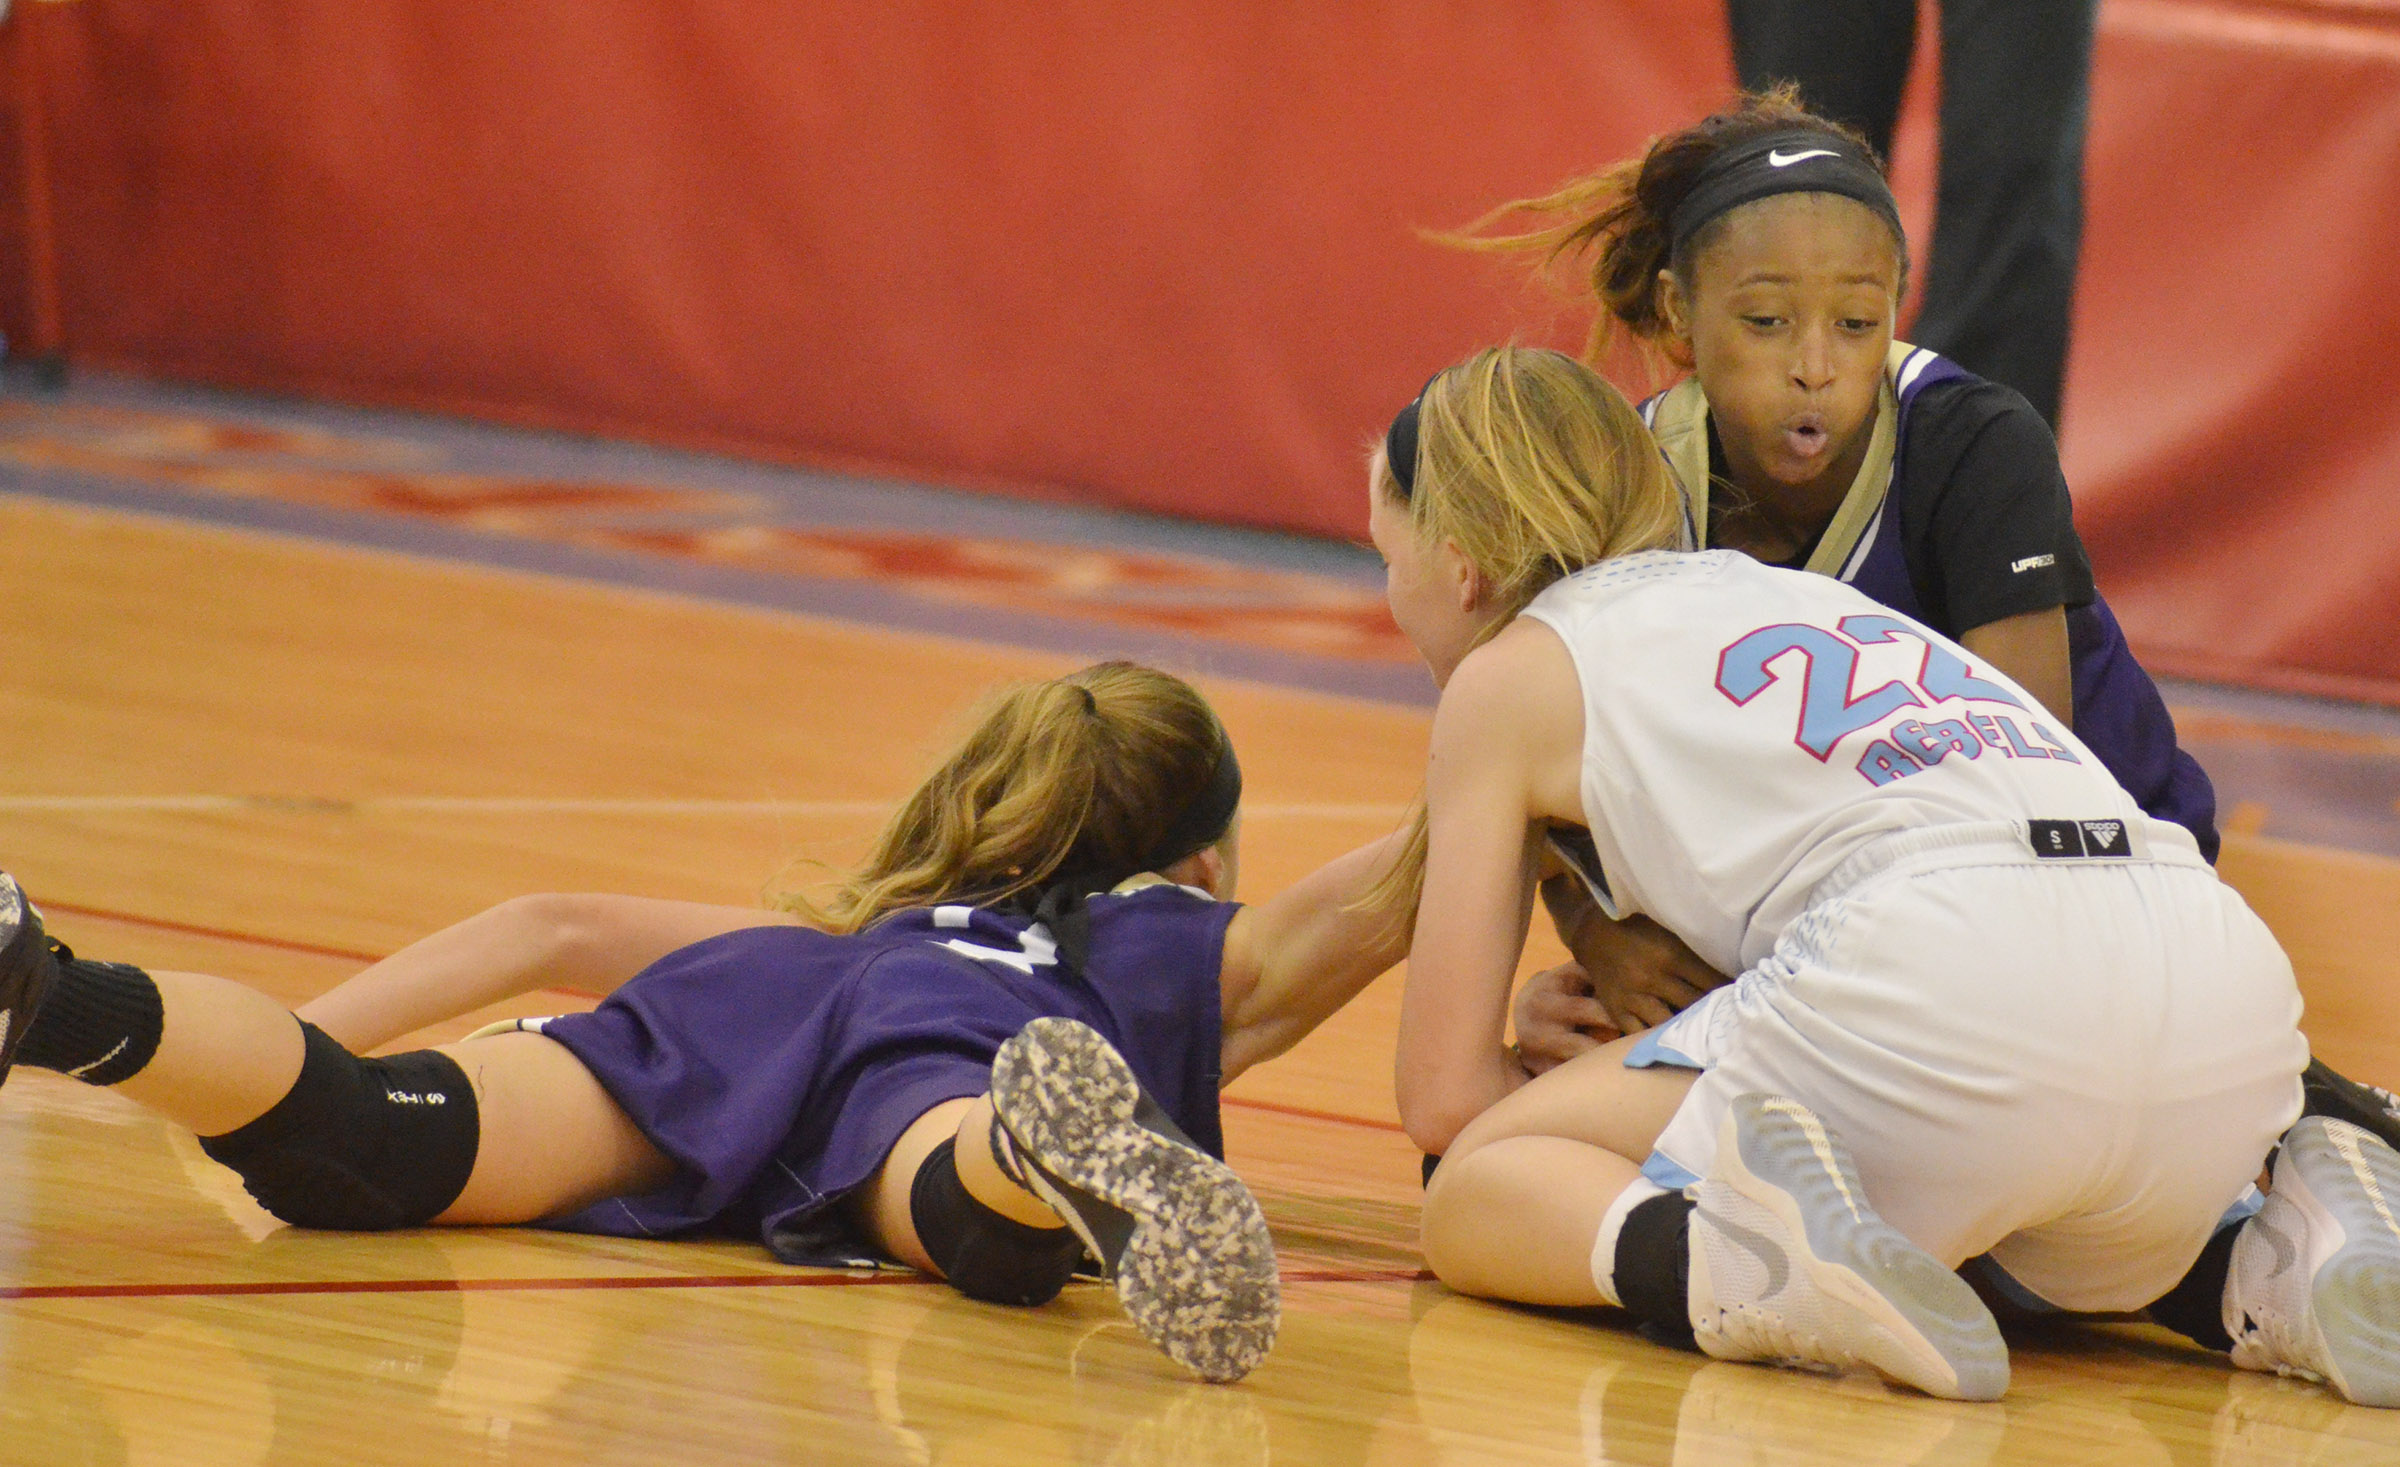 CMS eighth-graders Rylee Petett, at left, and Bri Gowdy fight for the ball.